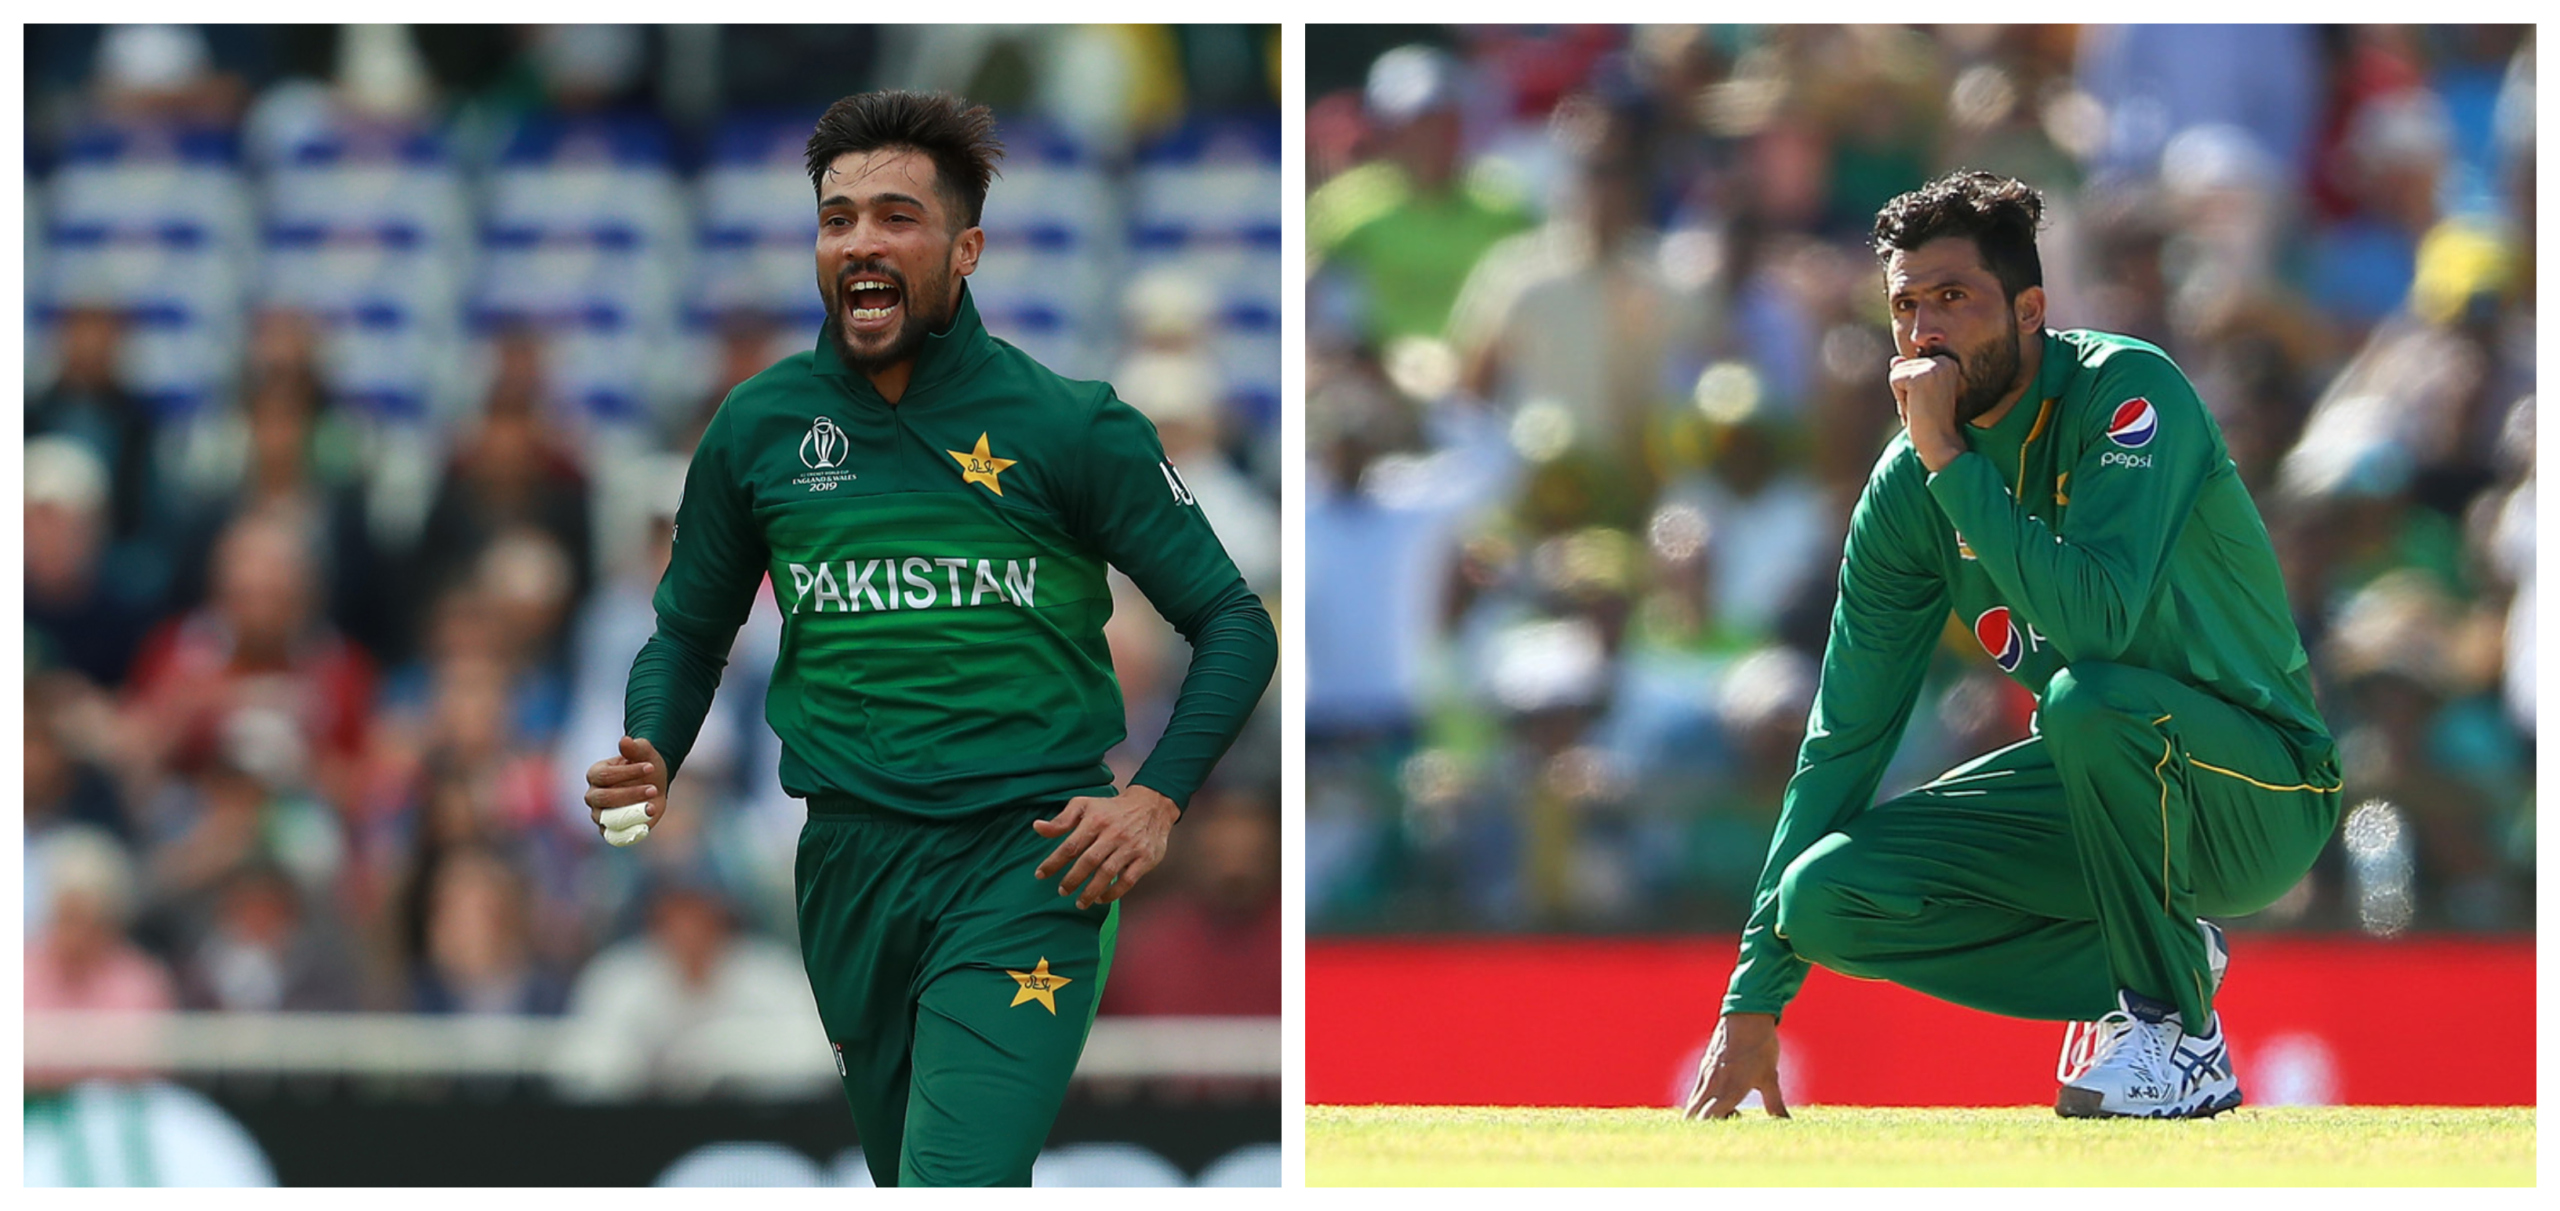 'Biggest Injustice': Says Aqib Javed to PCB on preferring Amir over Junaid Khan